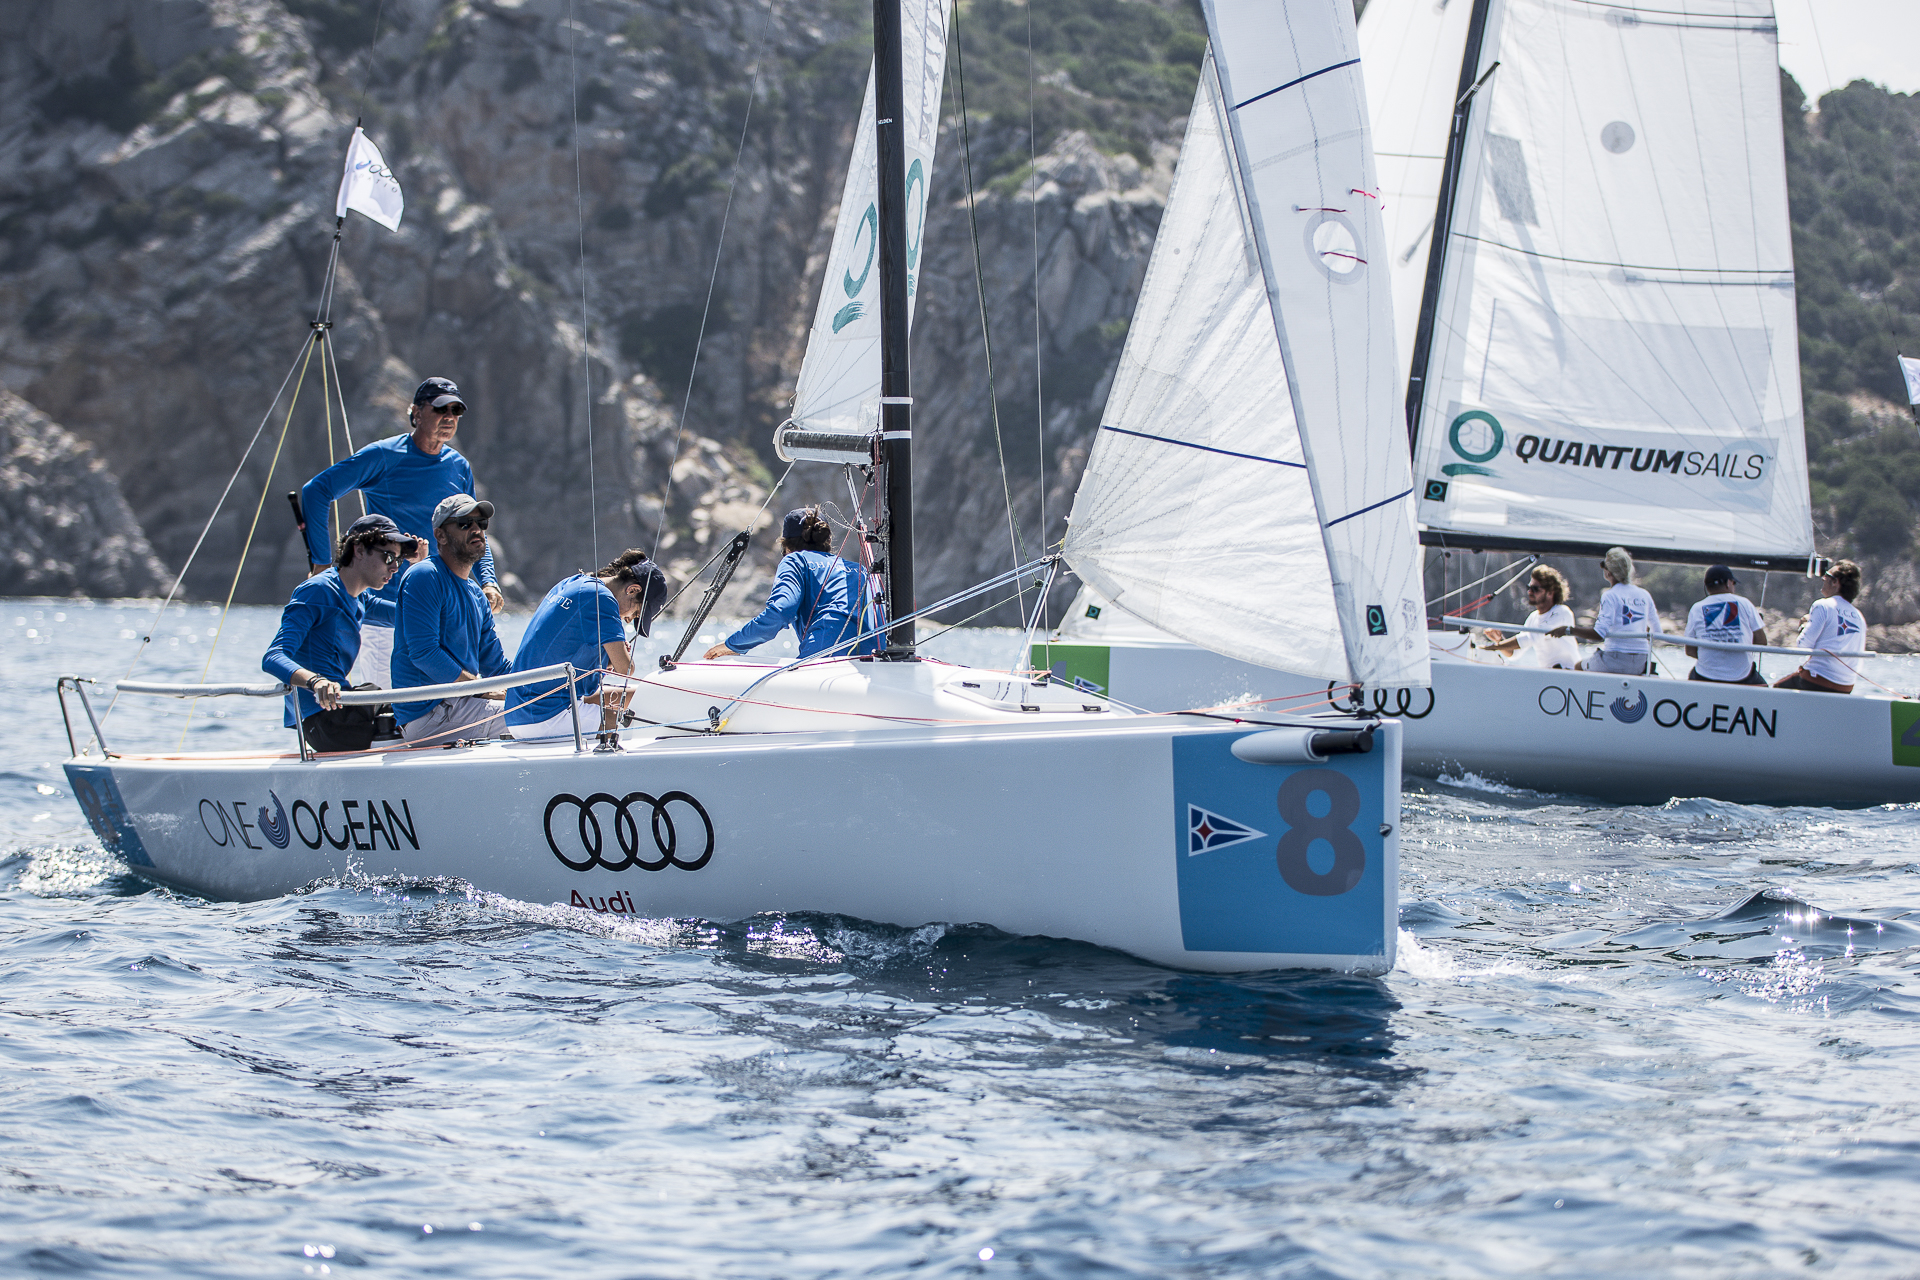 Il team di Germano Scarpa è Campione Sociale del 2018 - NEWS - Yacht Club Costa Smeralda